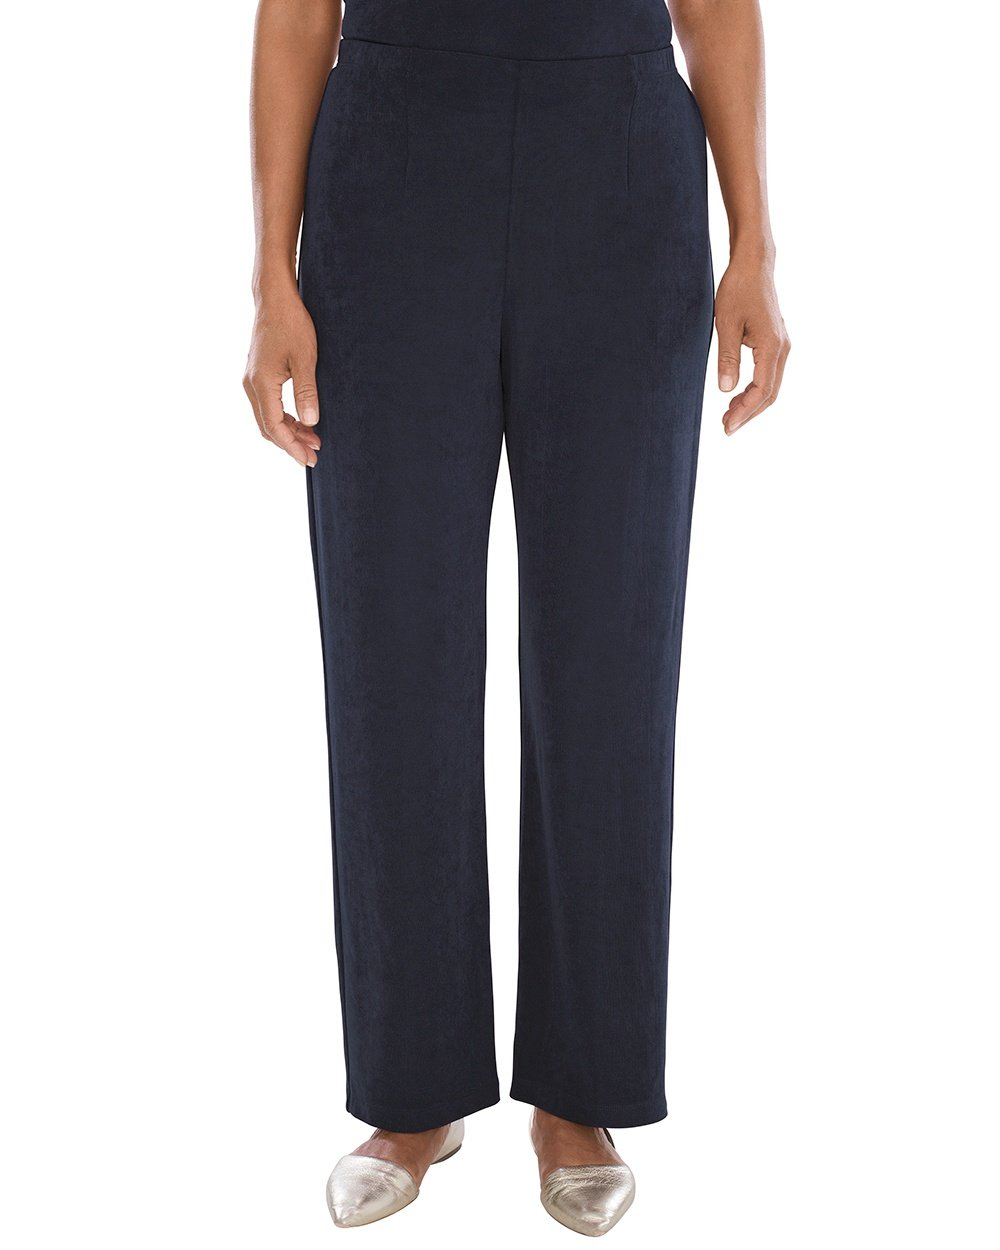 Chico's Women's Travelers Classic No Tummy Pants Size 12/14 L (2) Tall Blue